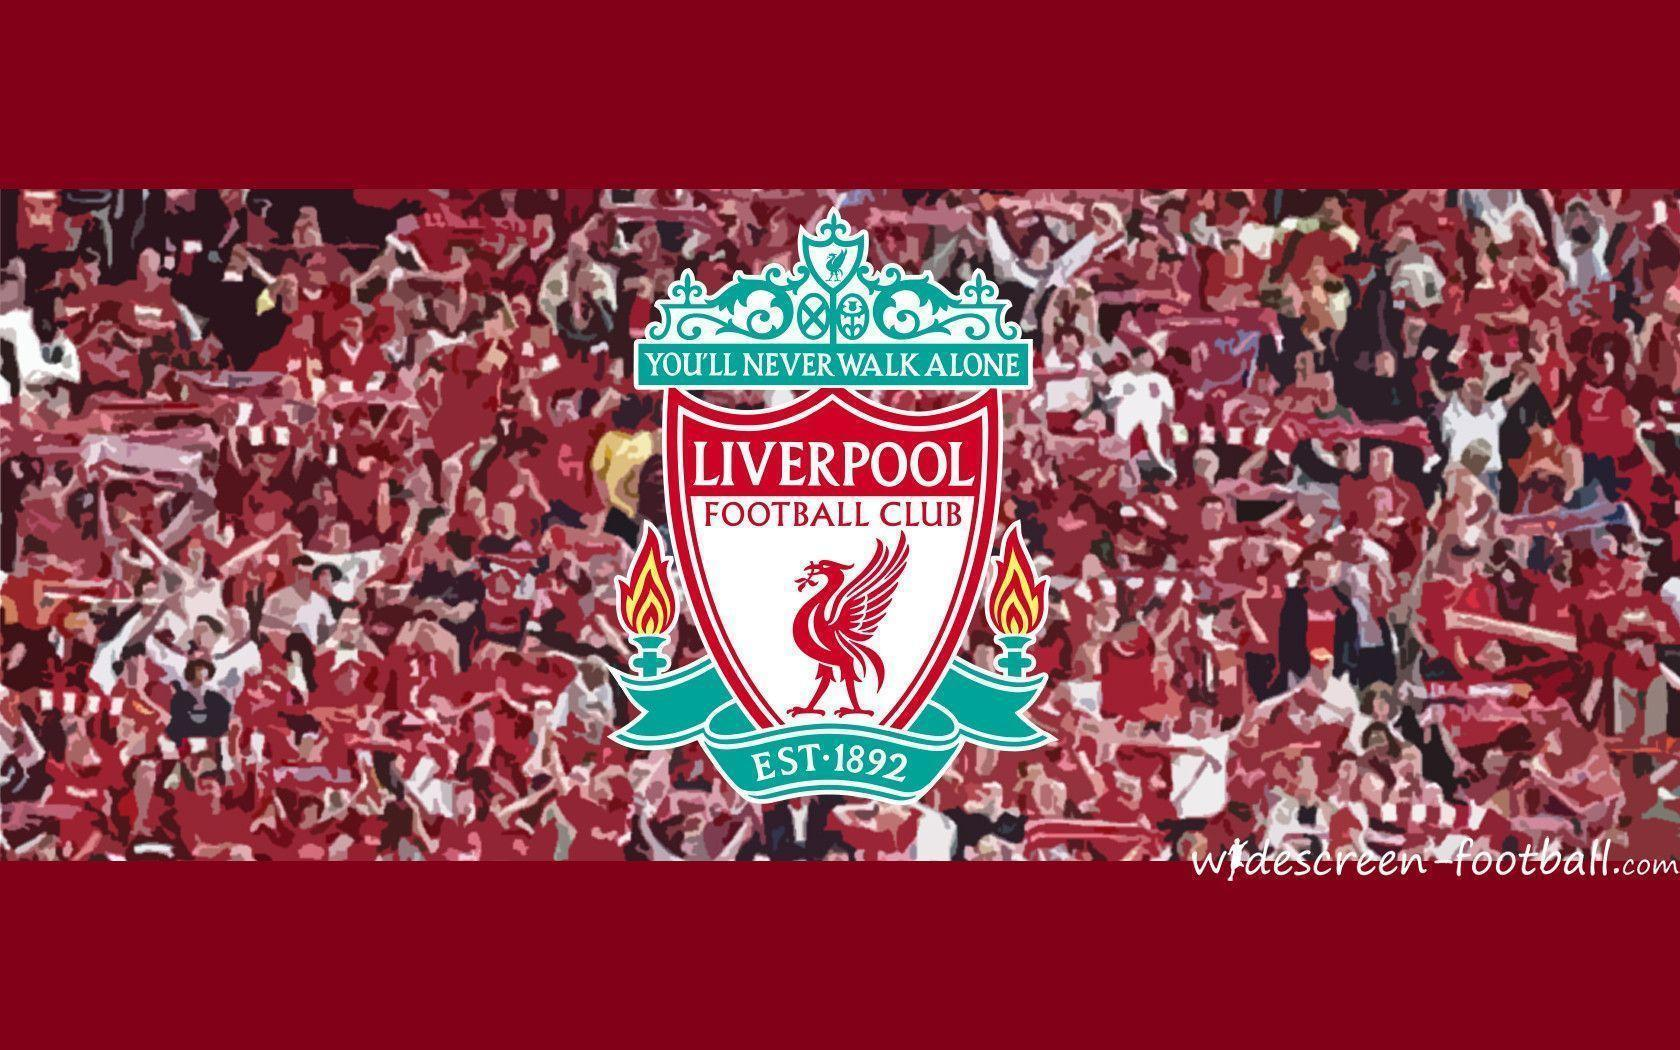 Unique Liverpool Fc Wallpapers Screensaver Wallpaper | Football ...